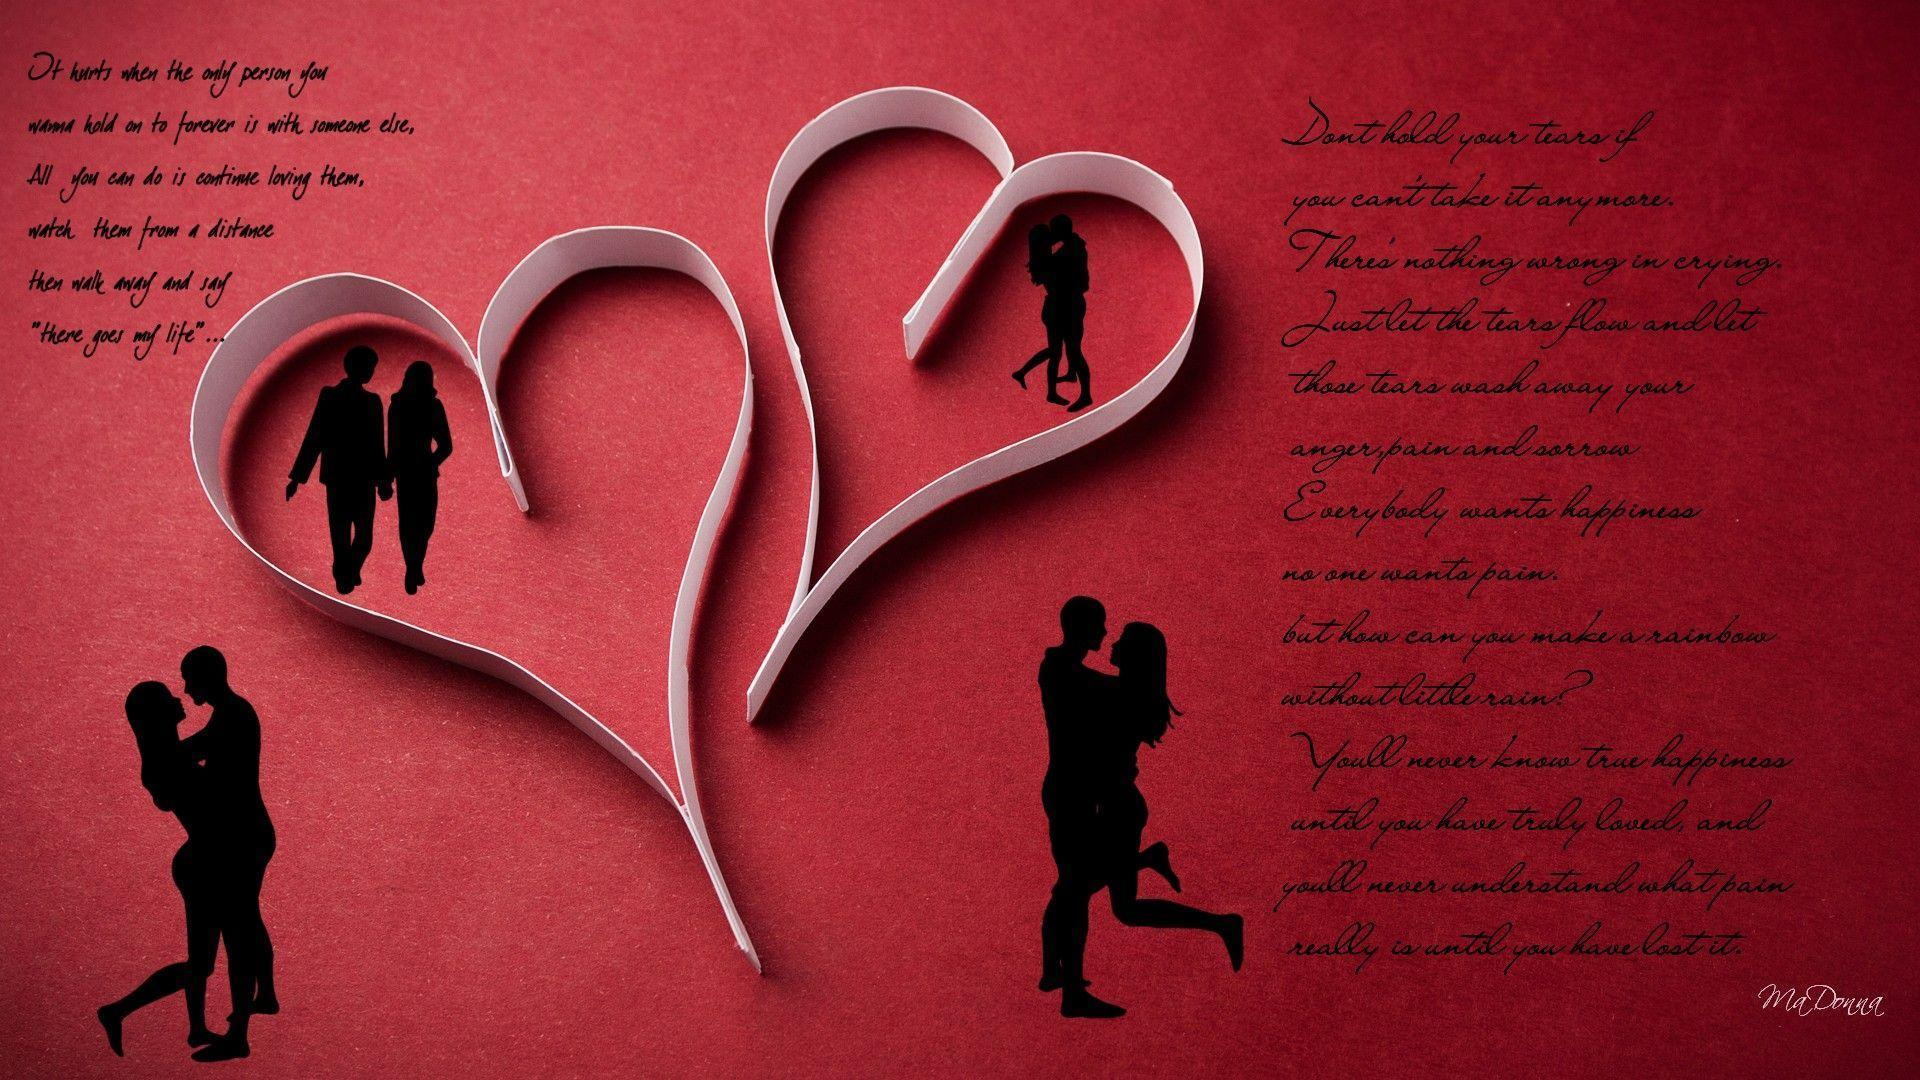 Love Wallpaper In Words : Wallpapers Love Words - Wallpaper cave